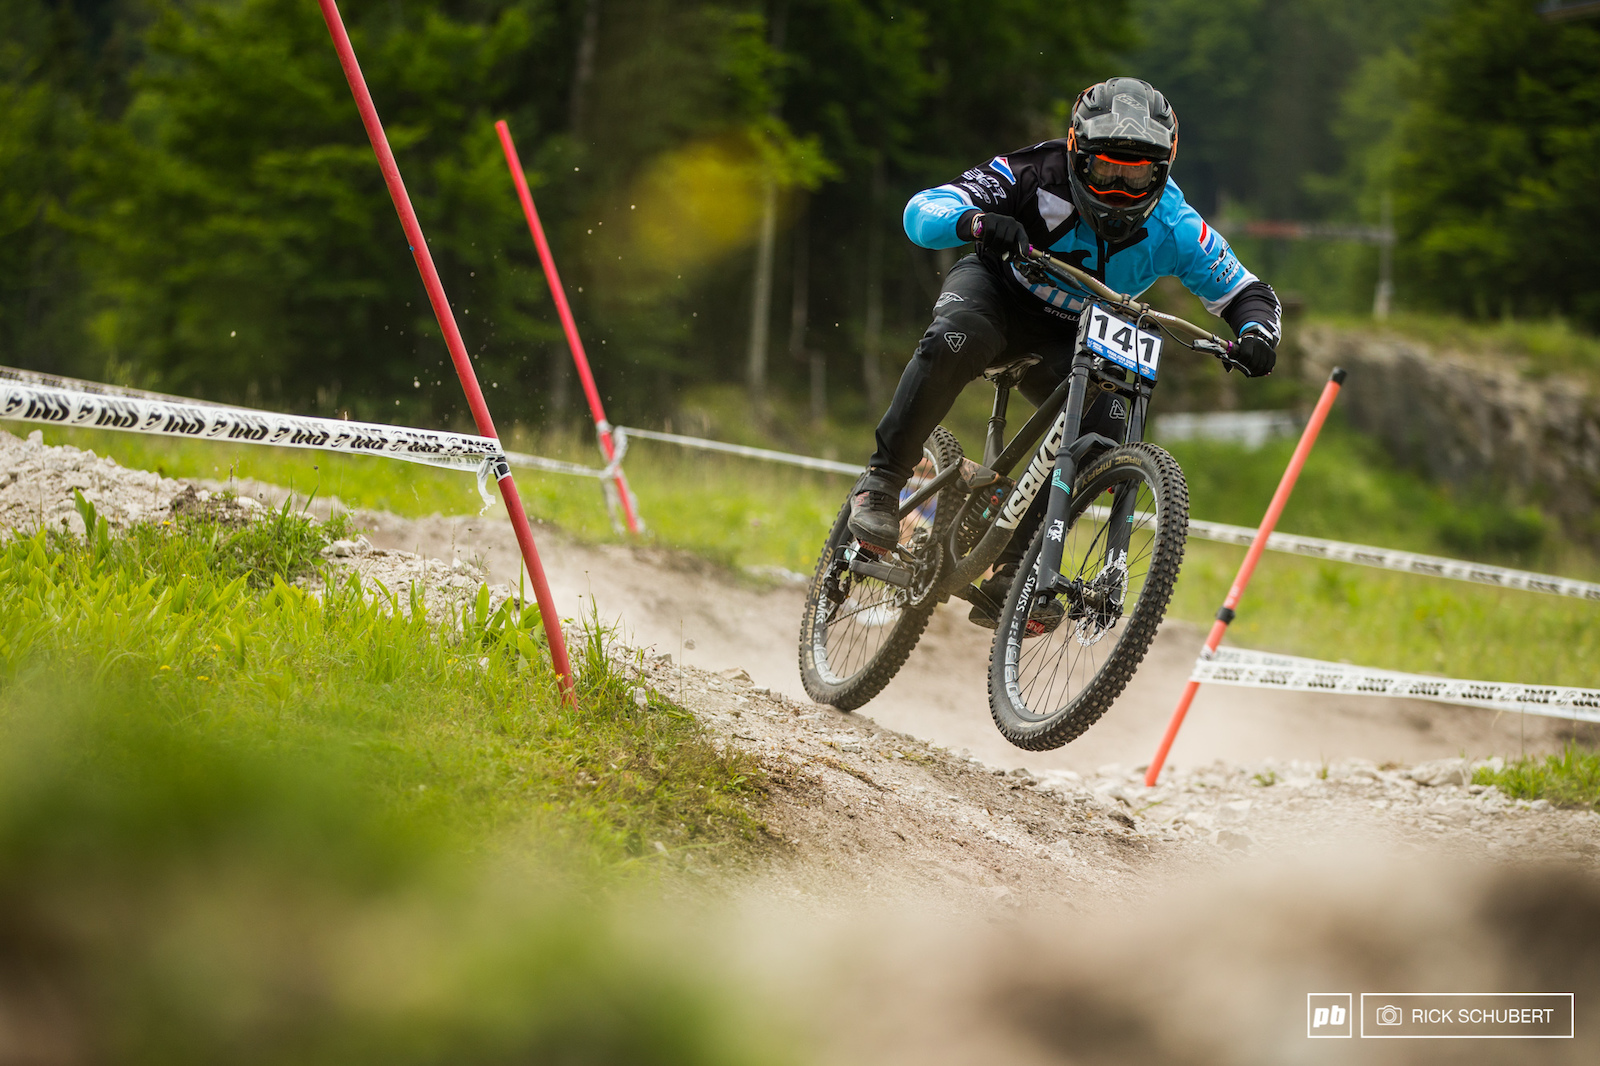 Trsitan Botteram wasn t just the fastest U19 male rider he was fastest overall on saturday. His final run would have put him into 8th in the elite